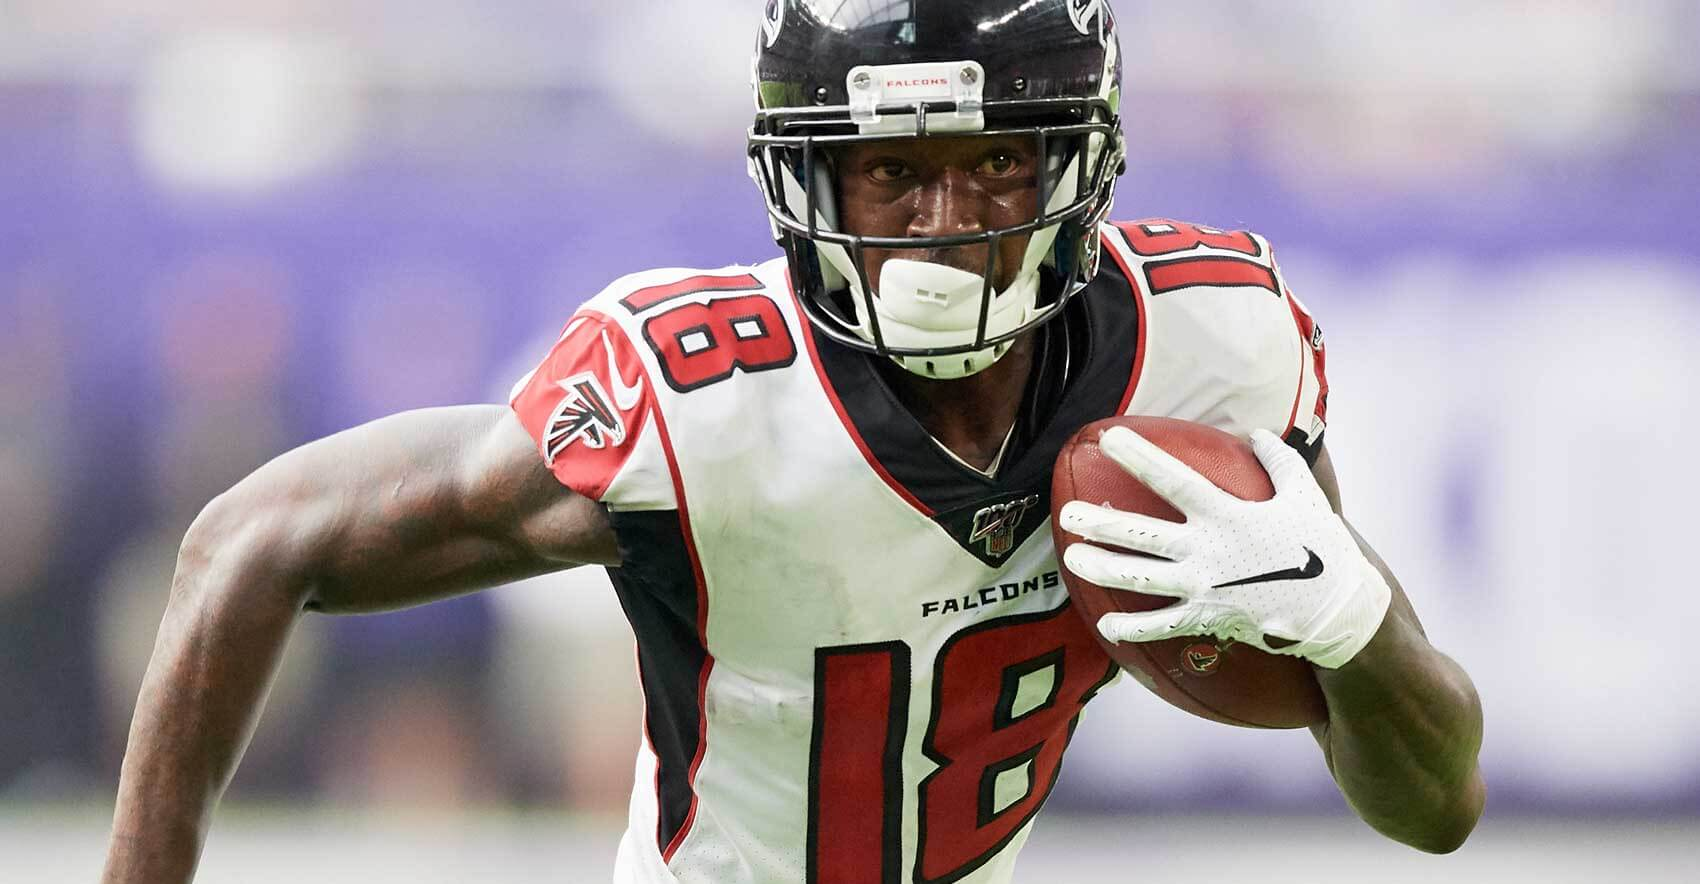 Week 6 Matchups + In-or-Out, Oh Yeahhhhhhhhh!